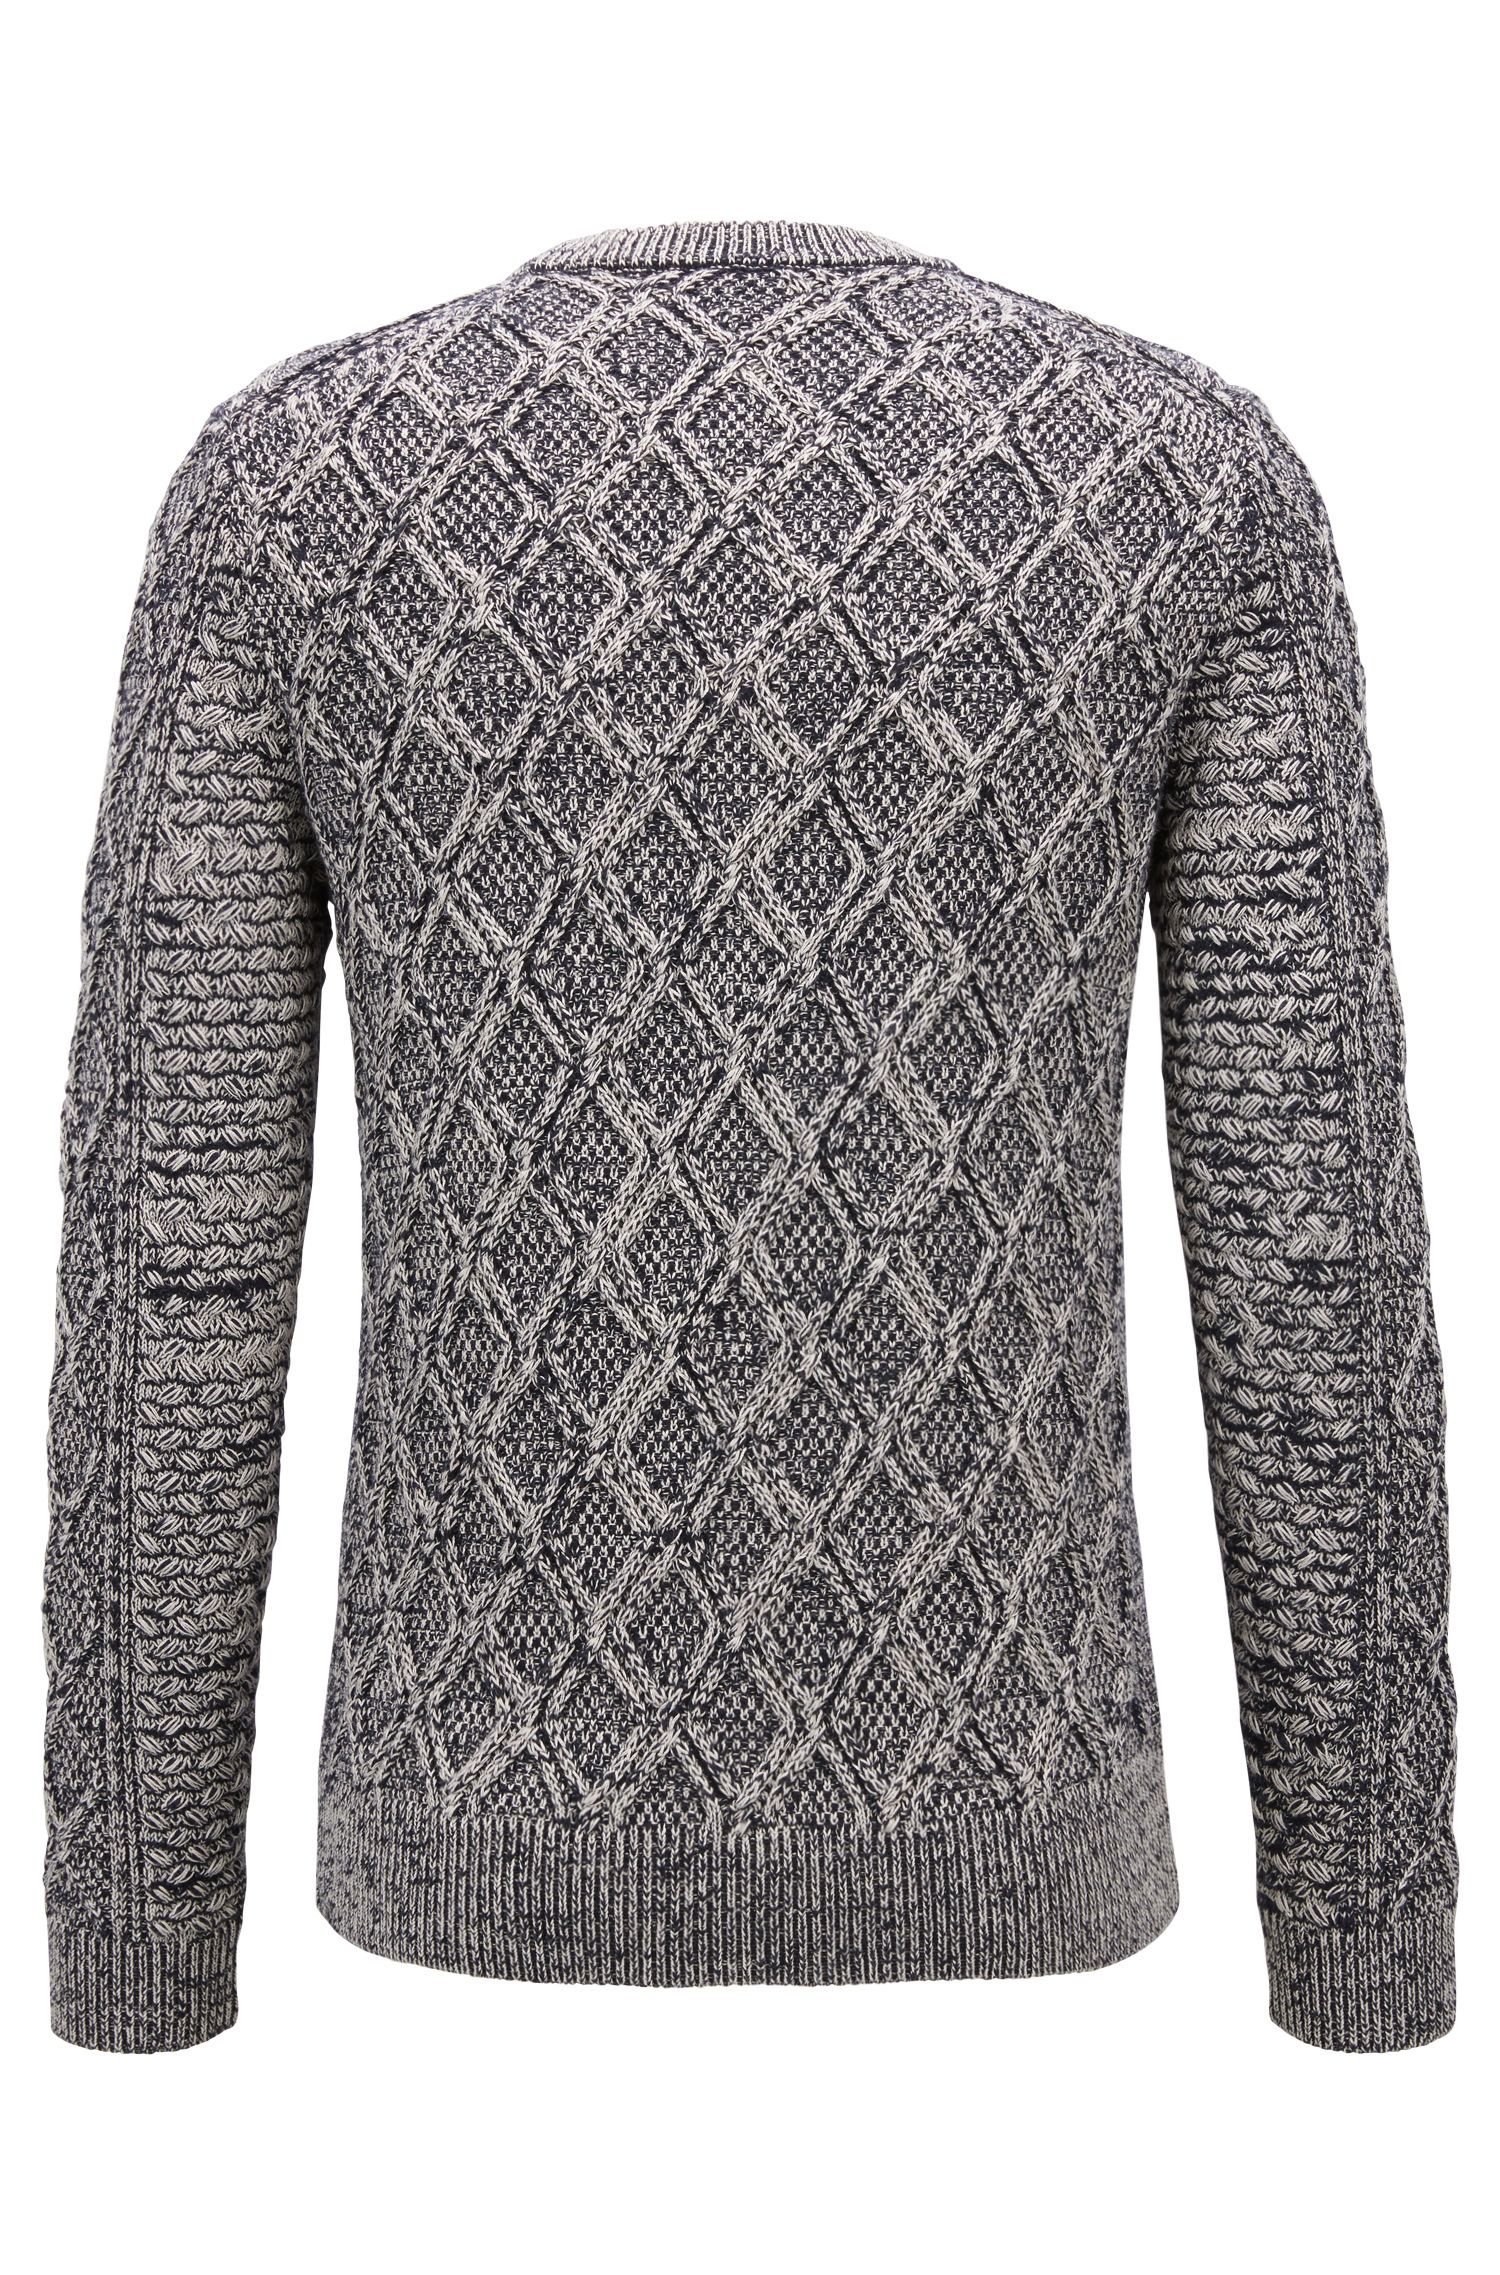 Cotton-blend sweater in a three-dimensional cable knit, Dark Blue